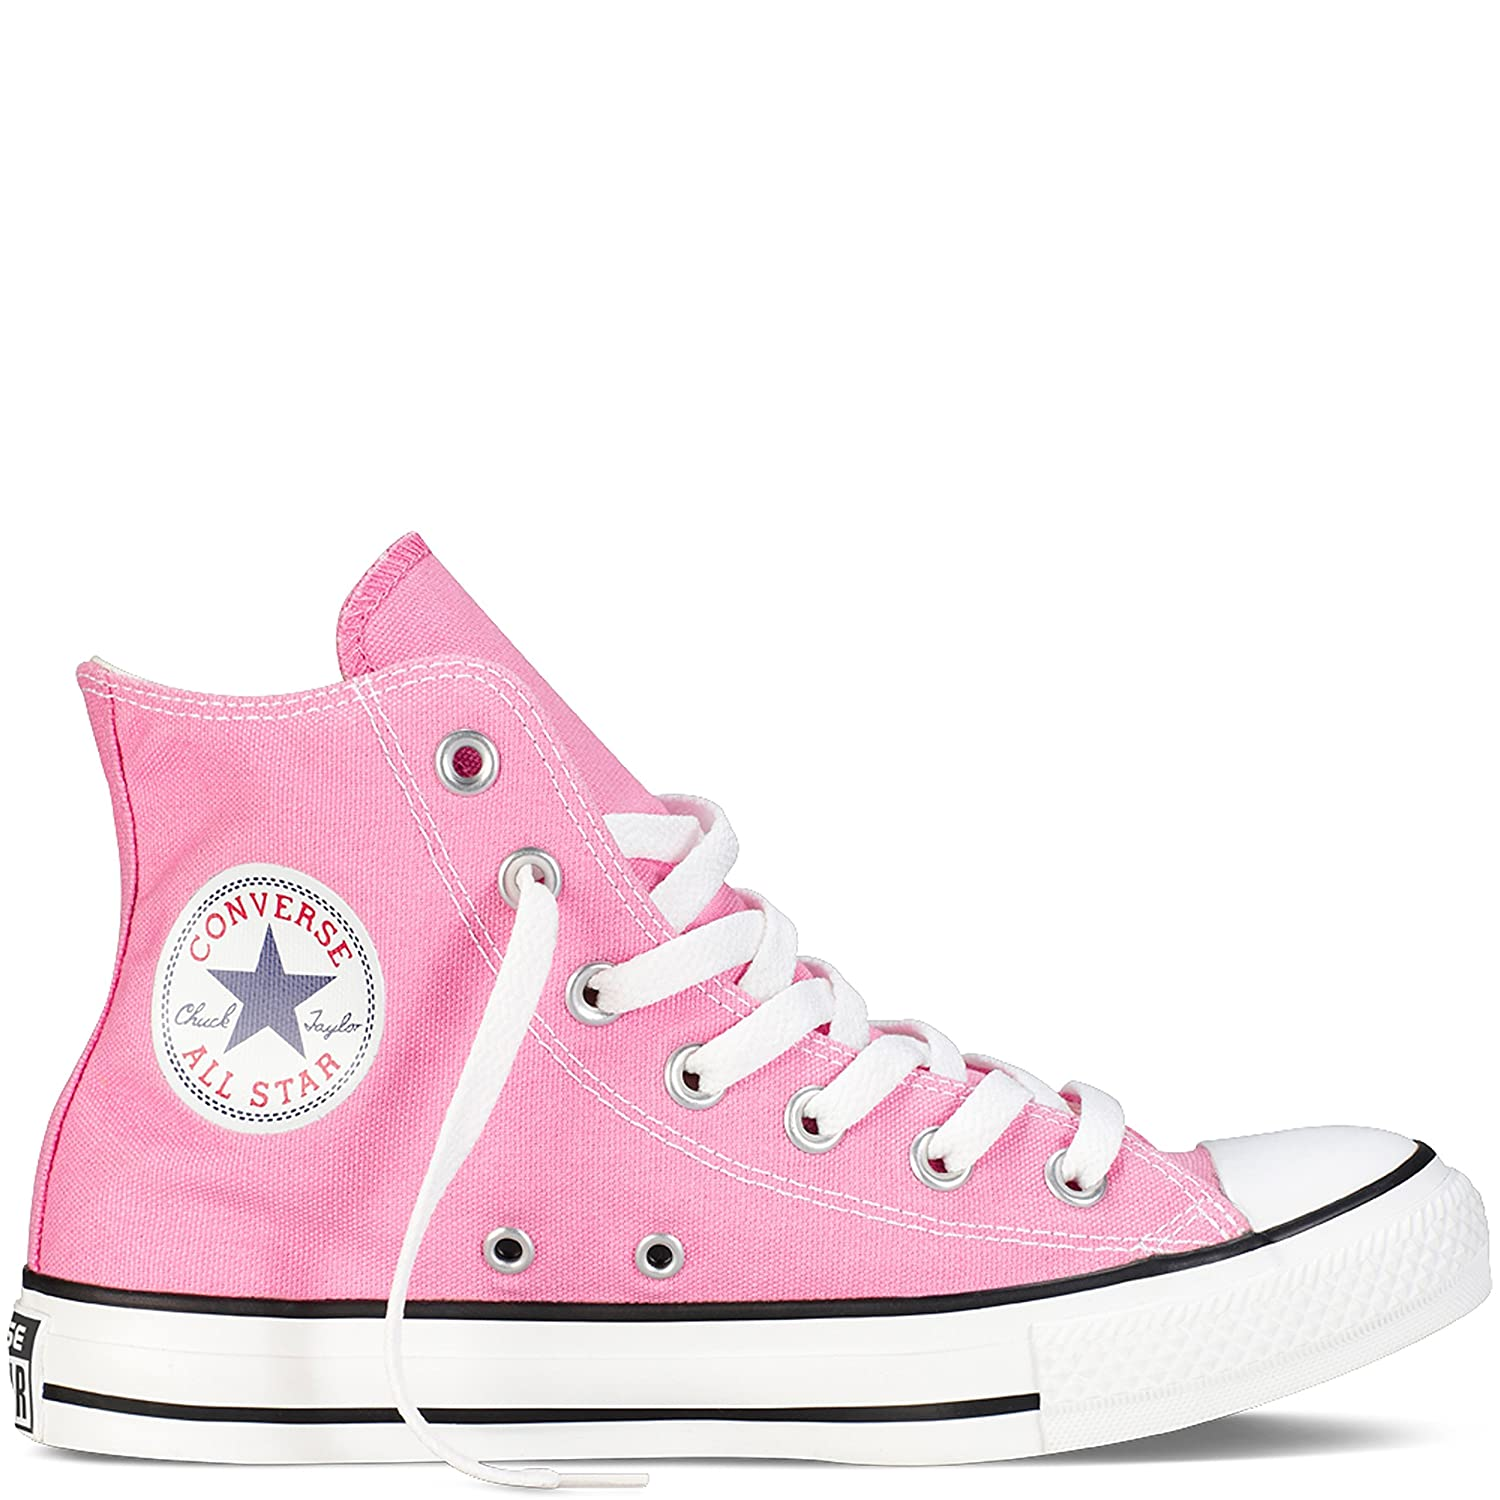 Converse Chuck Taylor Top Etoiles Low Top Sneakers 19778 Sneaker Mode Taylor Rose (Rose TR I3 19) 3e100e6 - fast-weightloss-diet.space